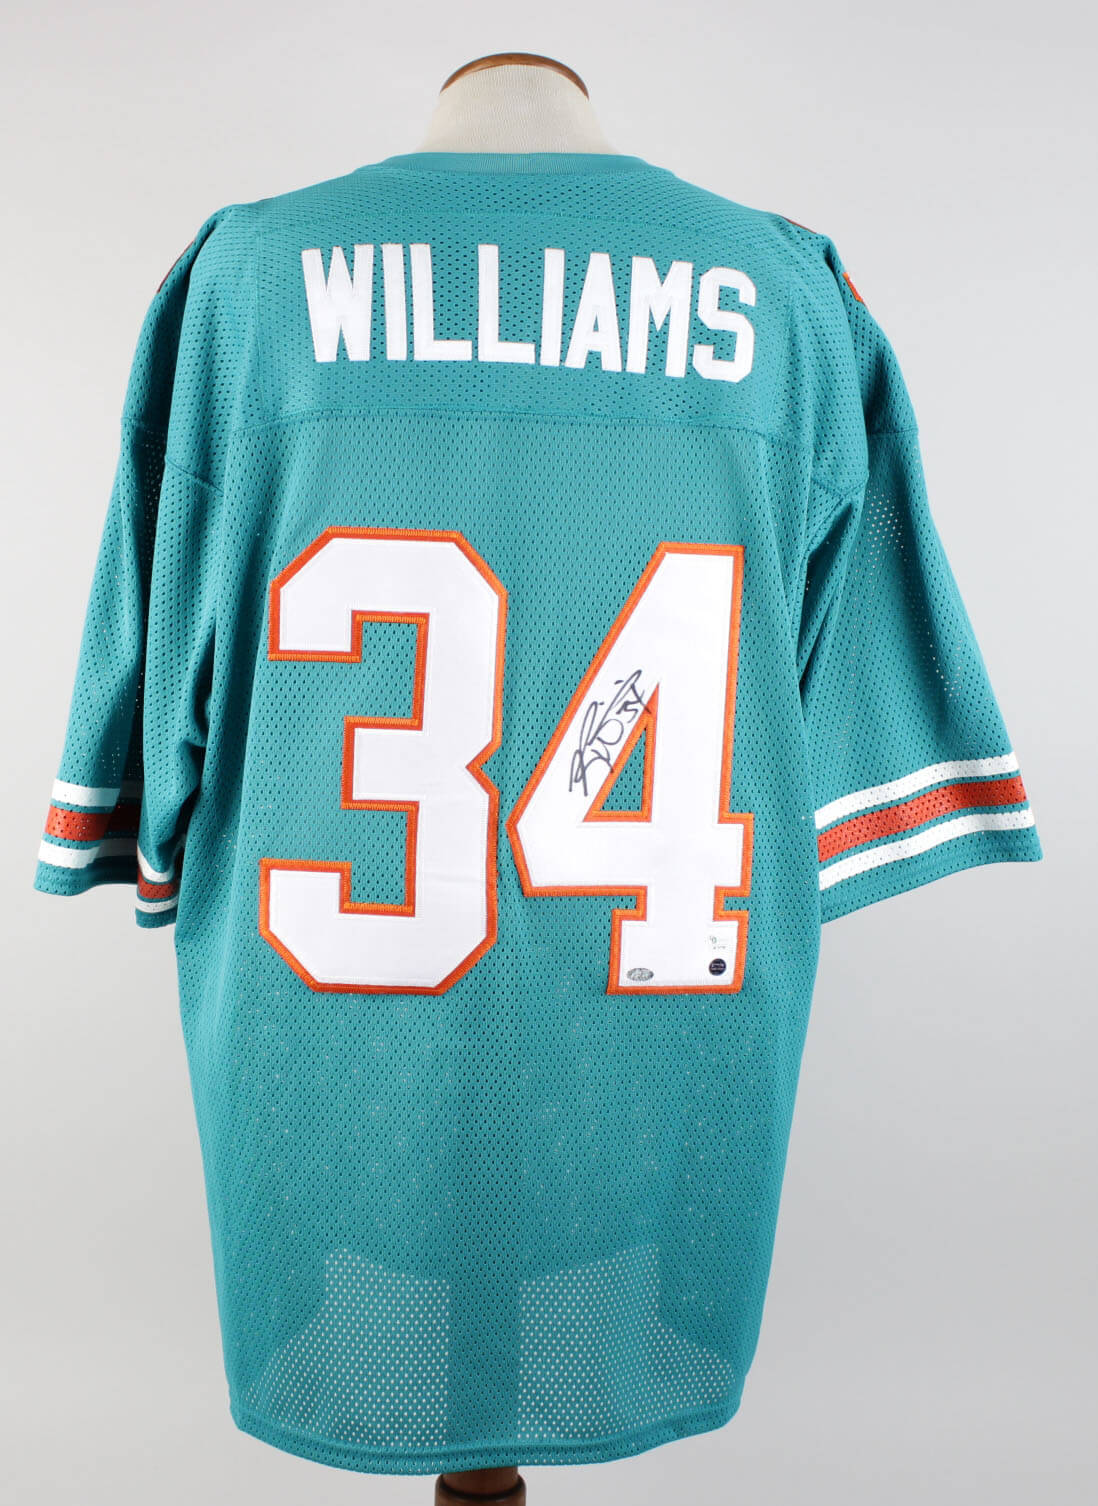 outlet store 0c15a a9da7 Miami Dolphins - Ricky Williams Signed & Inscribed Home Jersey - COA